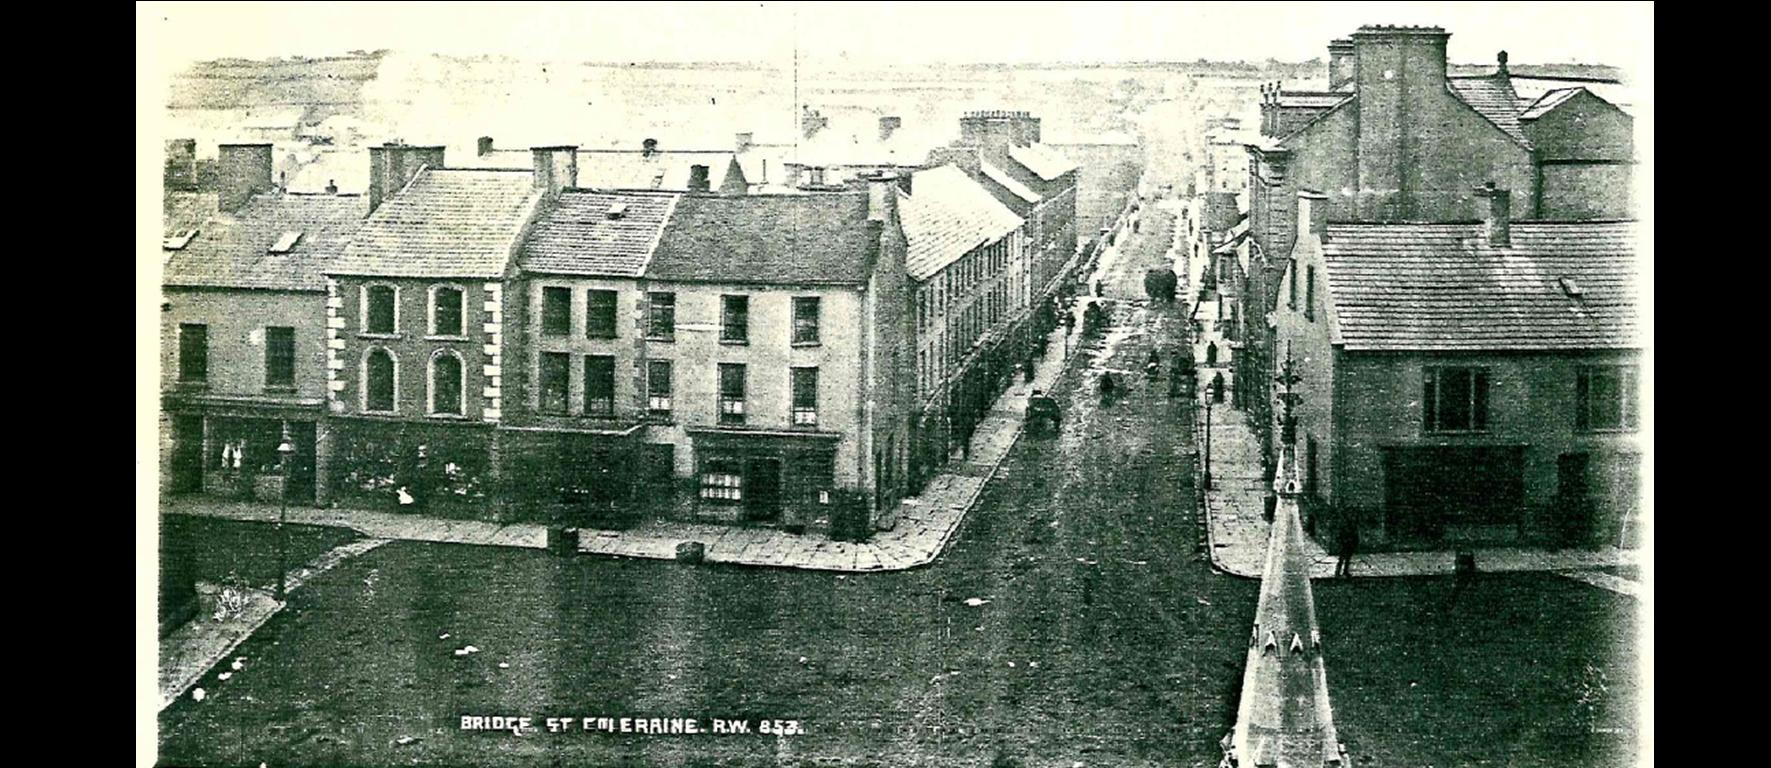 A view down Bridge street Coleraine in the late 1800's. Bishops is located in the left block, second from the right